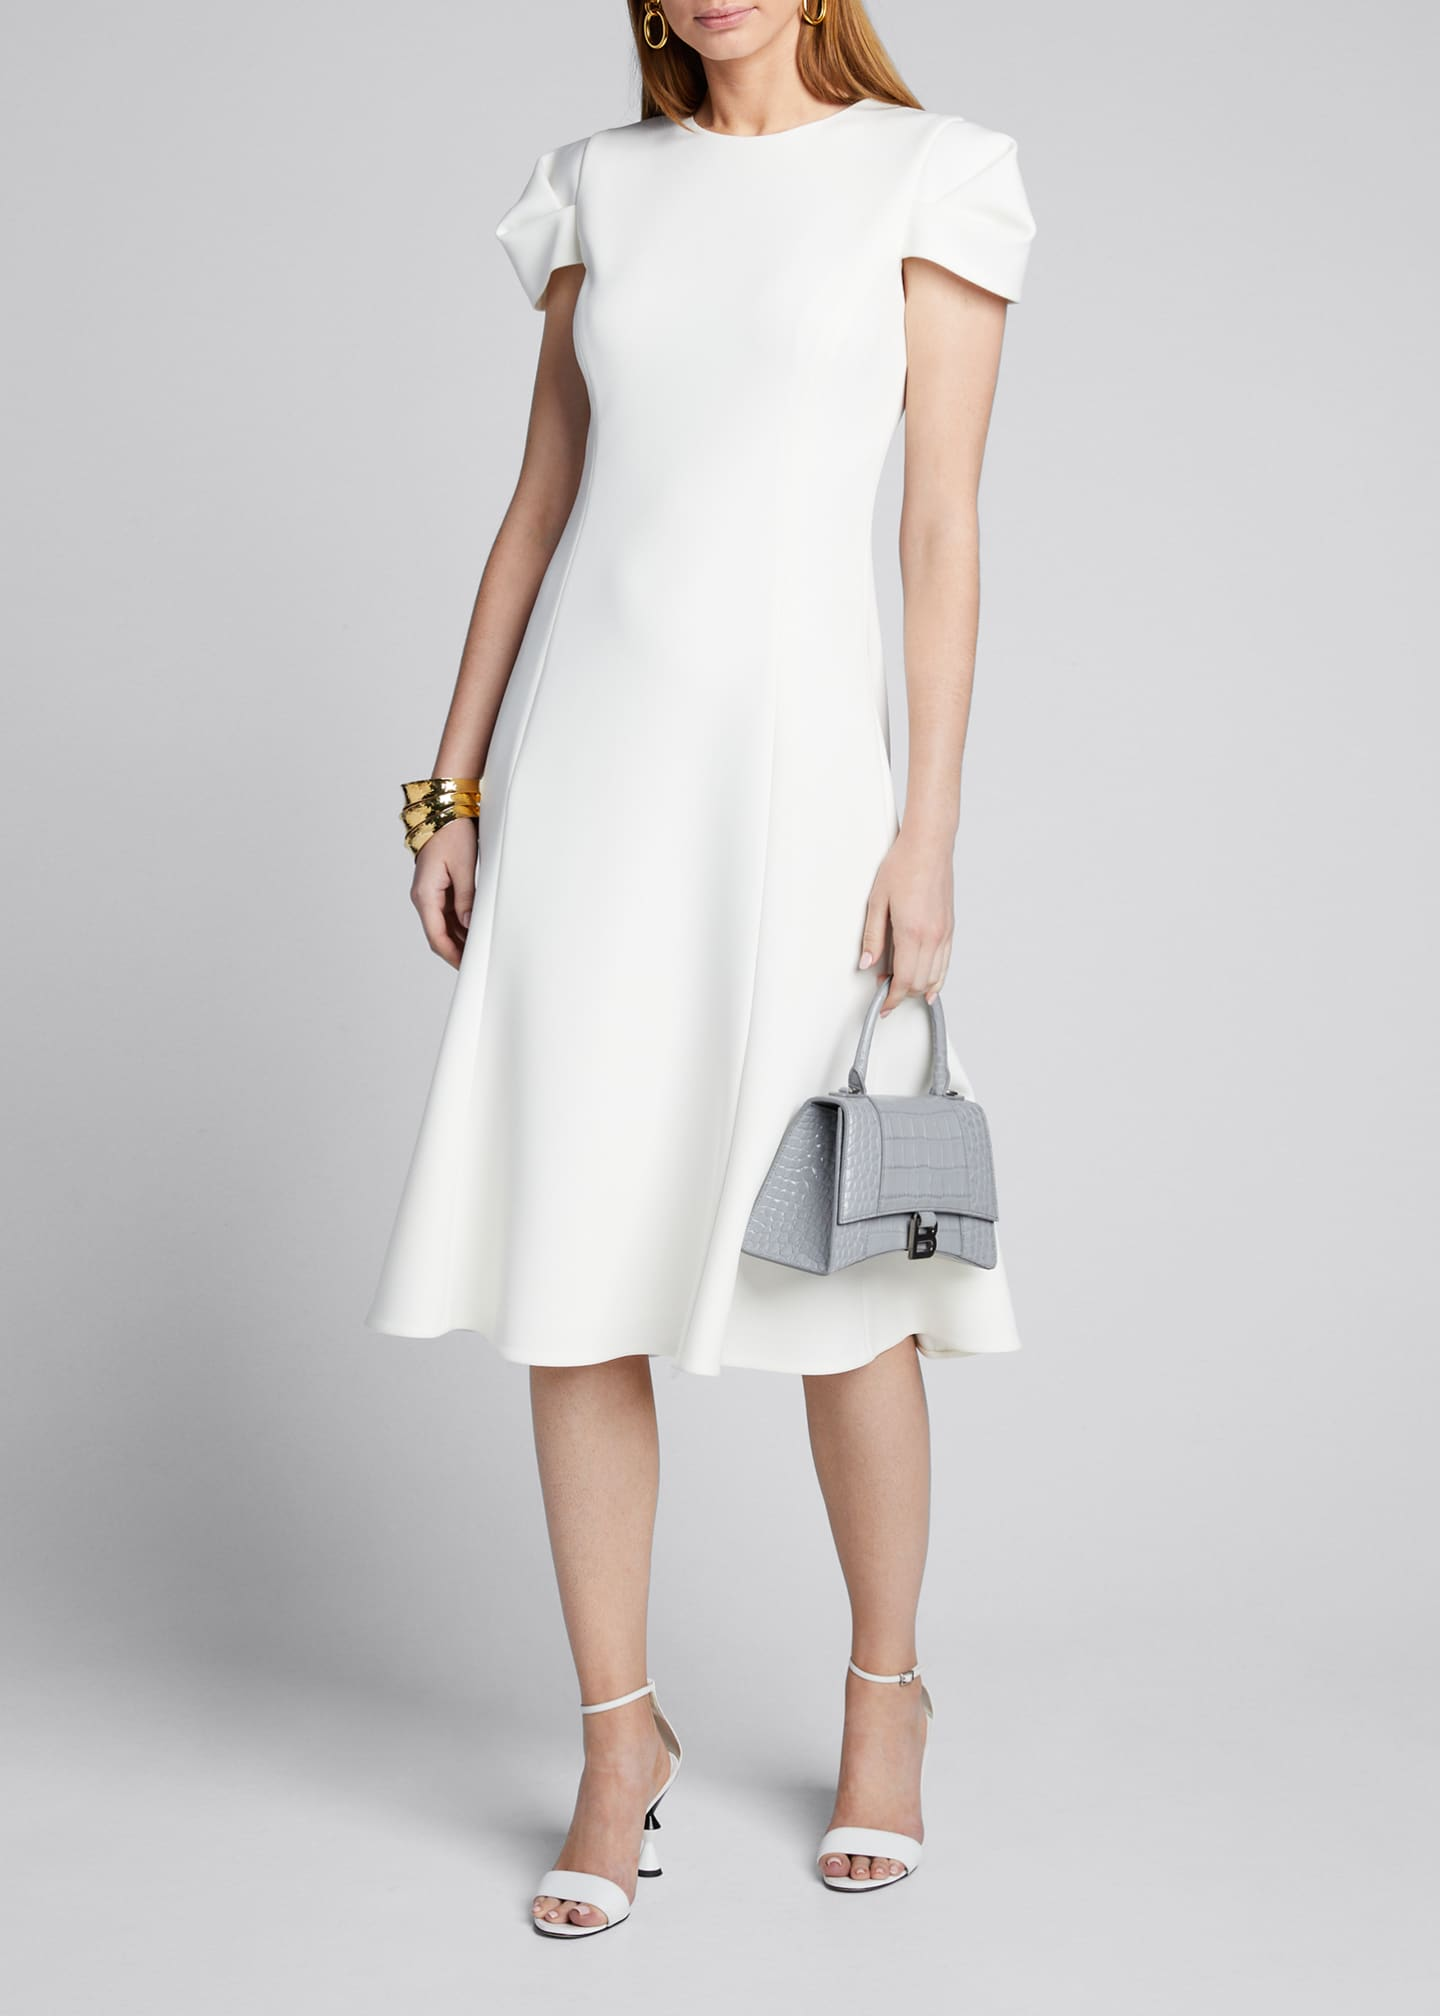 Jason Wu Collection Compact Crepe Fit & Flare